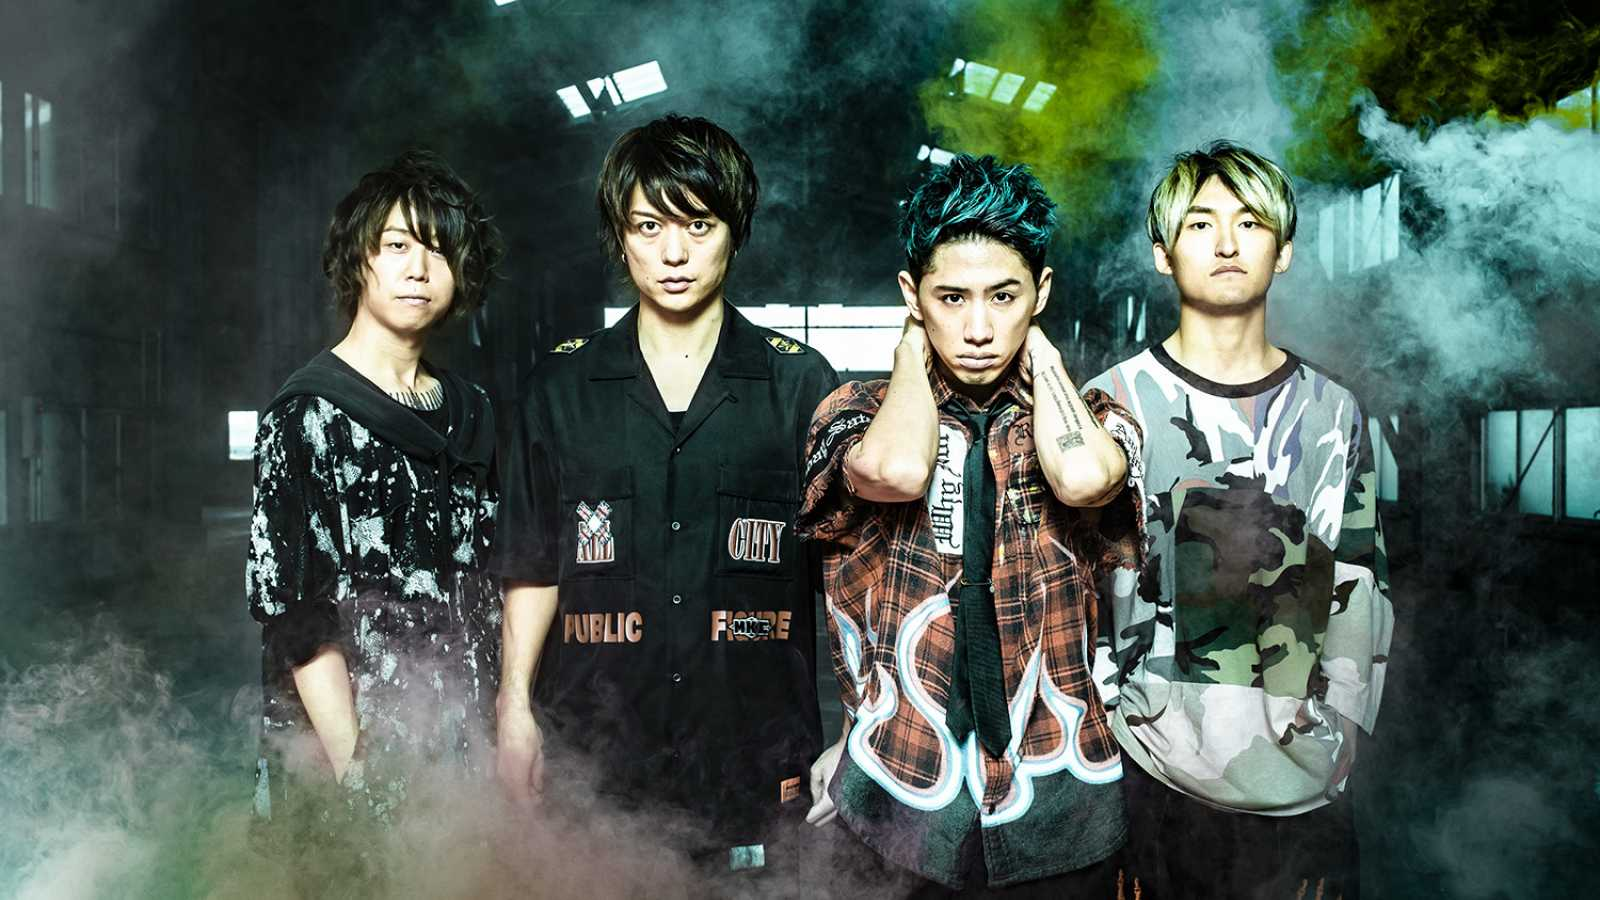 ONE OK ROCK Announces Field of Wonder Livestream Stadium Concert  © AMUSE INC. All rights reserved.